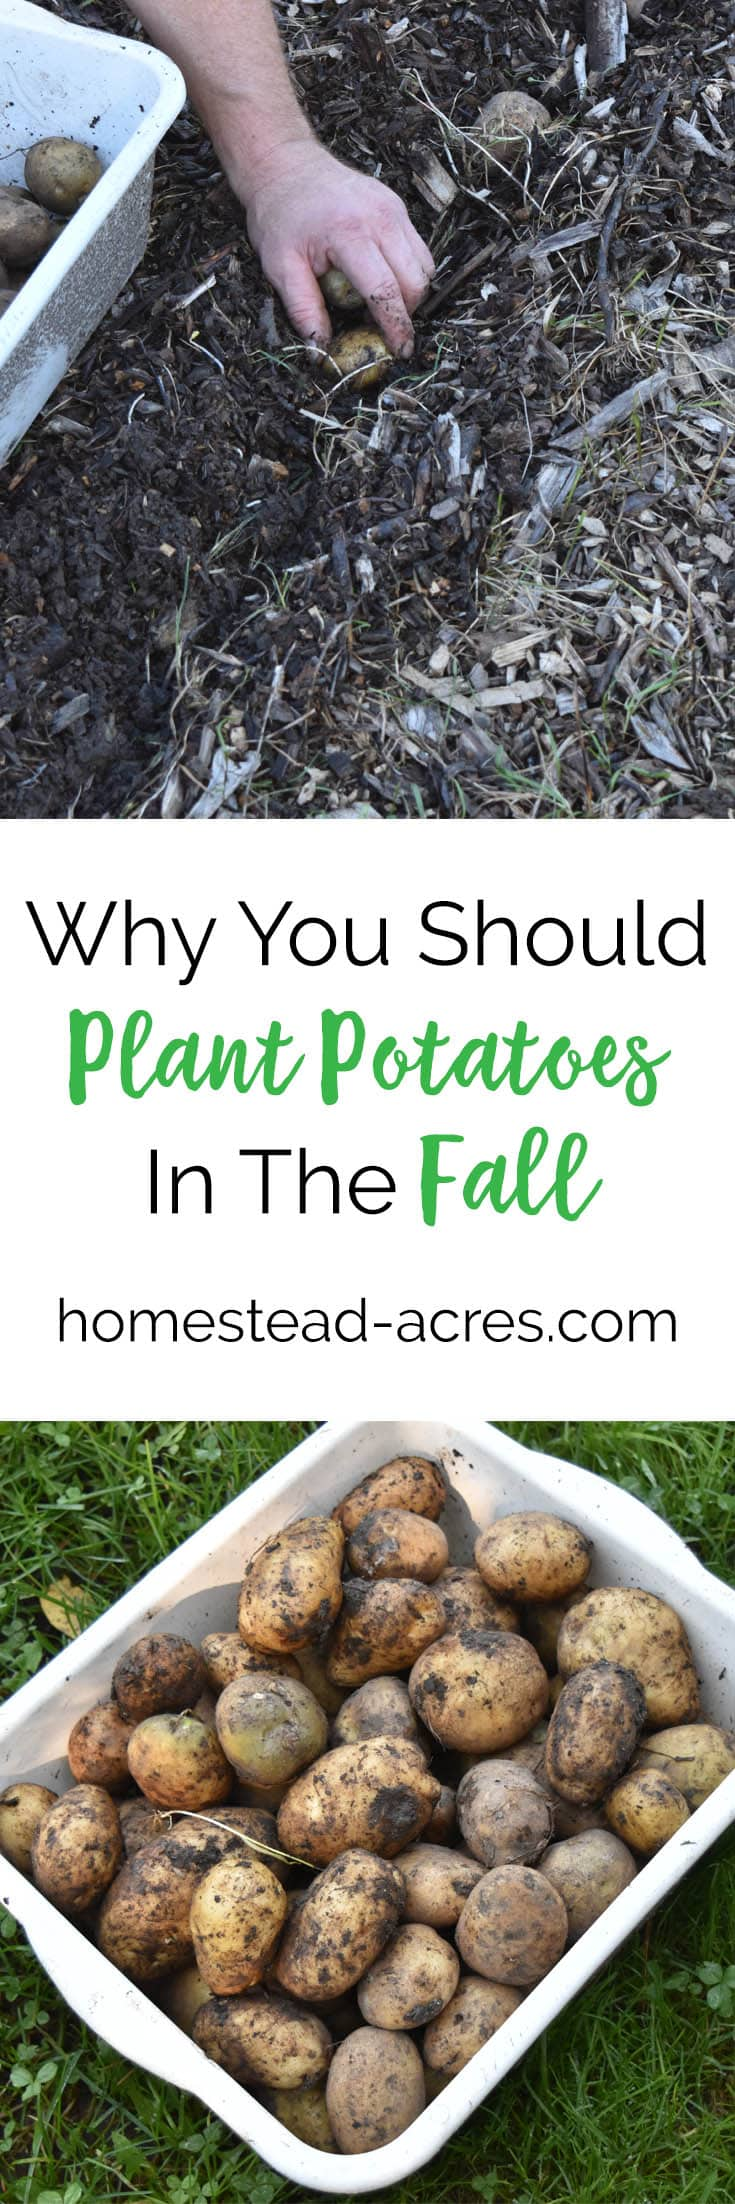 Planting Potatoes. How to plant potatoes in the fall. Save time and get a better harvest of potatoes next summer. #gardening #growingpotatoes